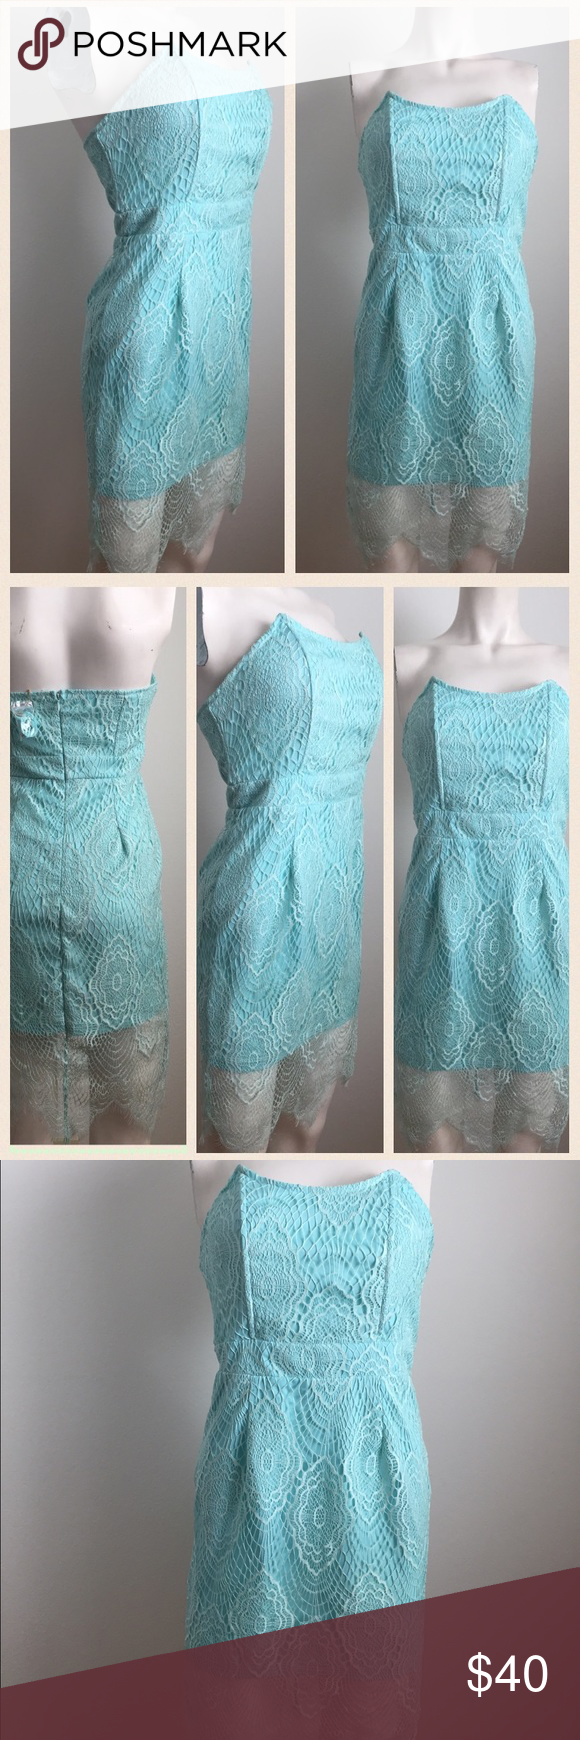 Blue lace dress Cute allover lace dress. Baby blue color. Zipper along the back. Comes with straps. You can convert to strapless or you can add the adjustable straps. Brand tag has been taken out. Has been used in a scene on a CBS TV show (other items in my closet that have been worn on tv have the brand tag along with the CBS costume department barcode but unfortunately this one does not ). In very good condition. Looks brand new! Dresses